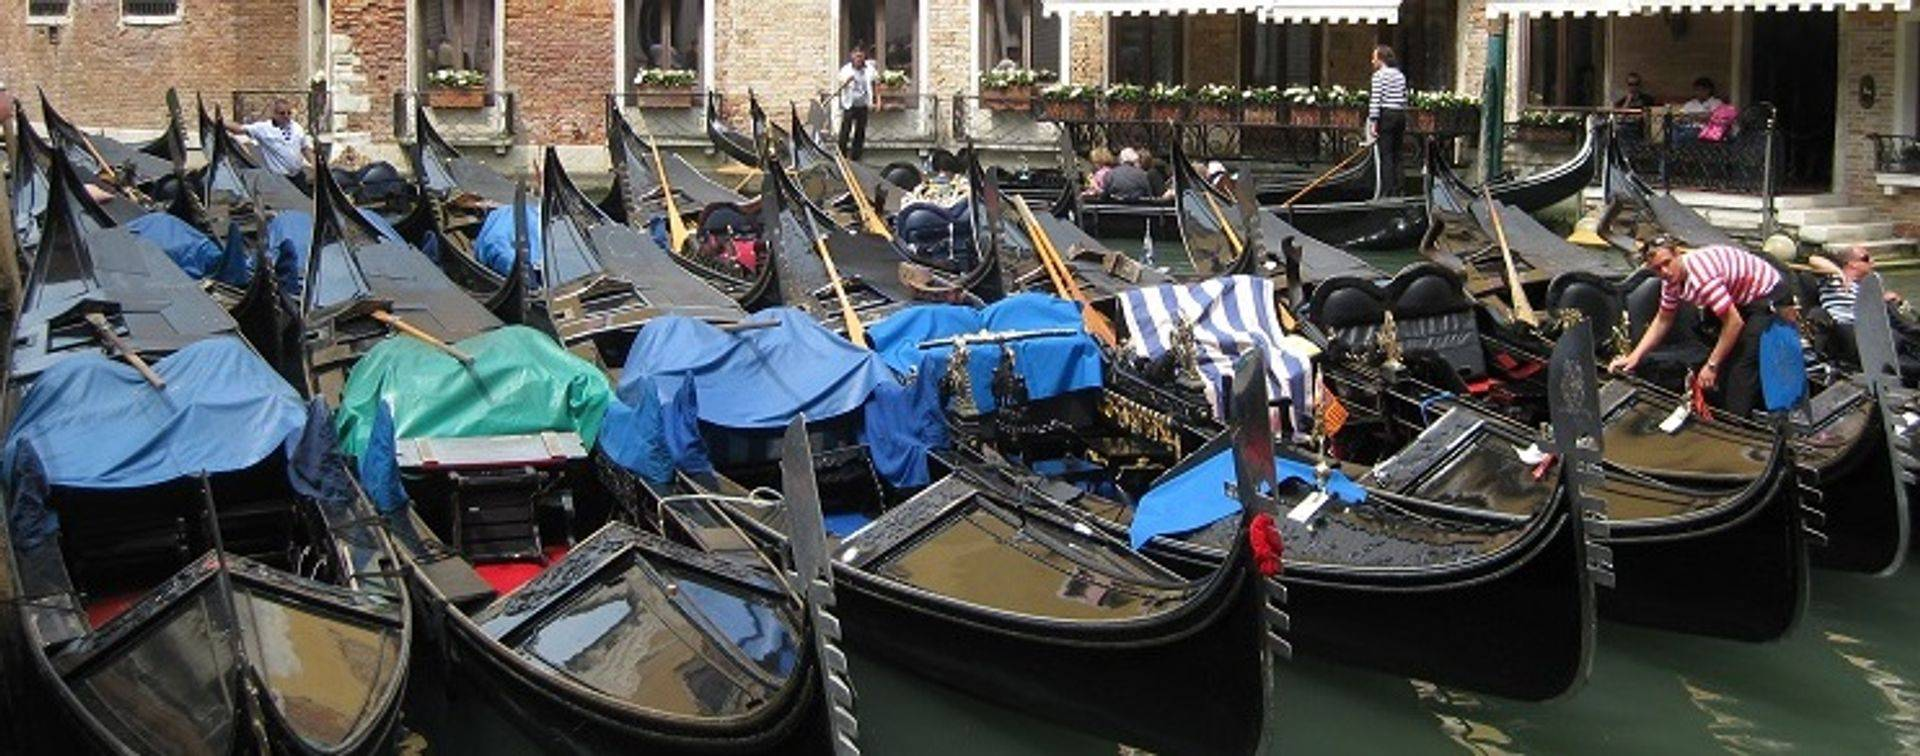 "womens travel.jpg alt= womens travel, gondolas in a row, venice, italy "">"